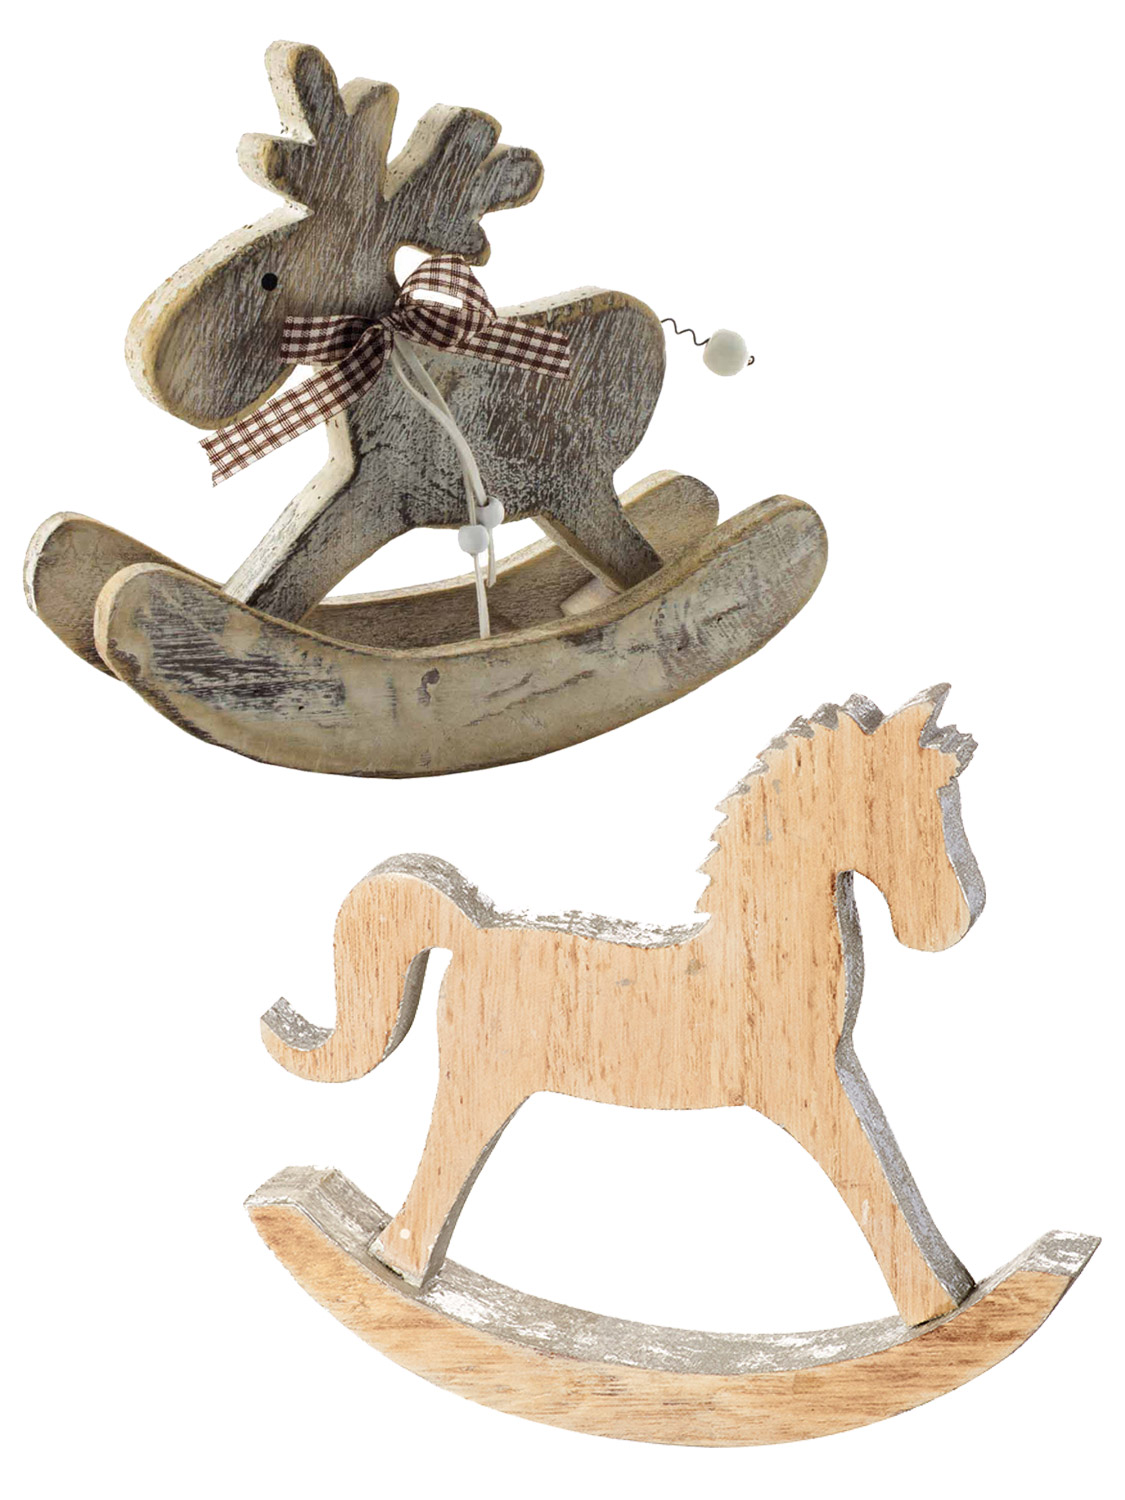 Transform Your Home In Style This Christmas With Either Of These Festive Wooden Rocking Horse Reindeer Ornaments Includes A Driftwood